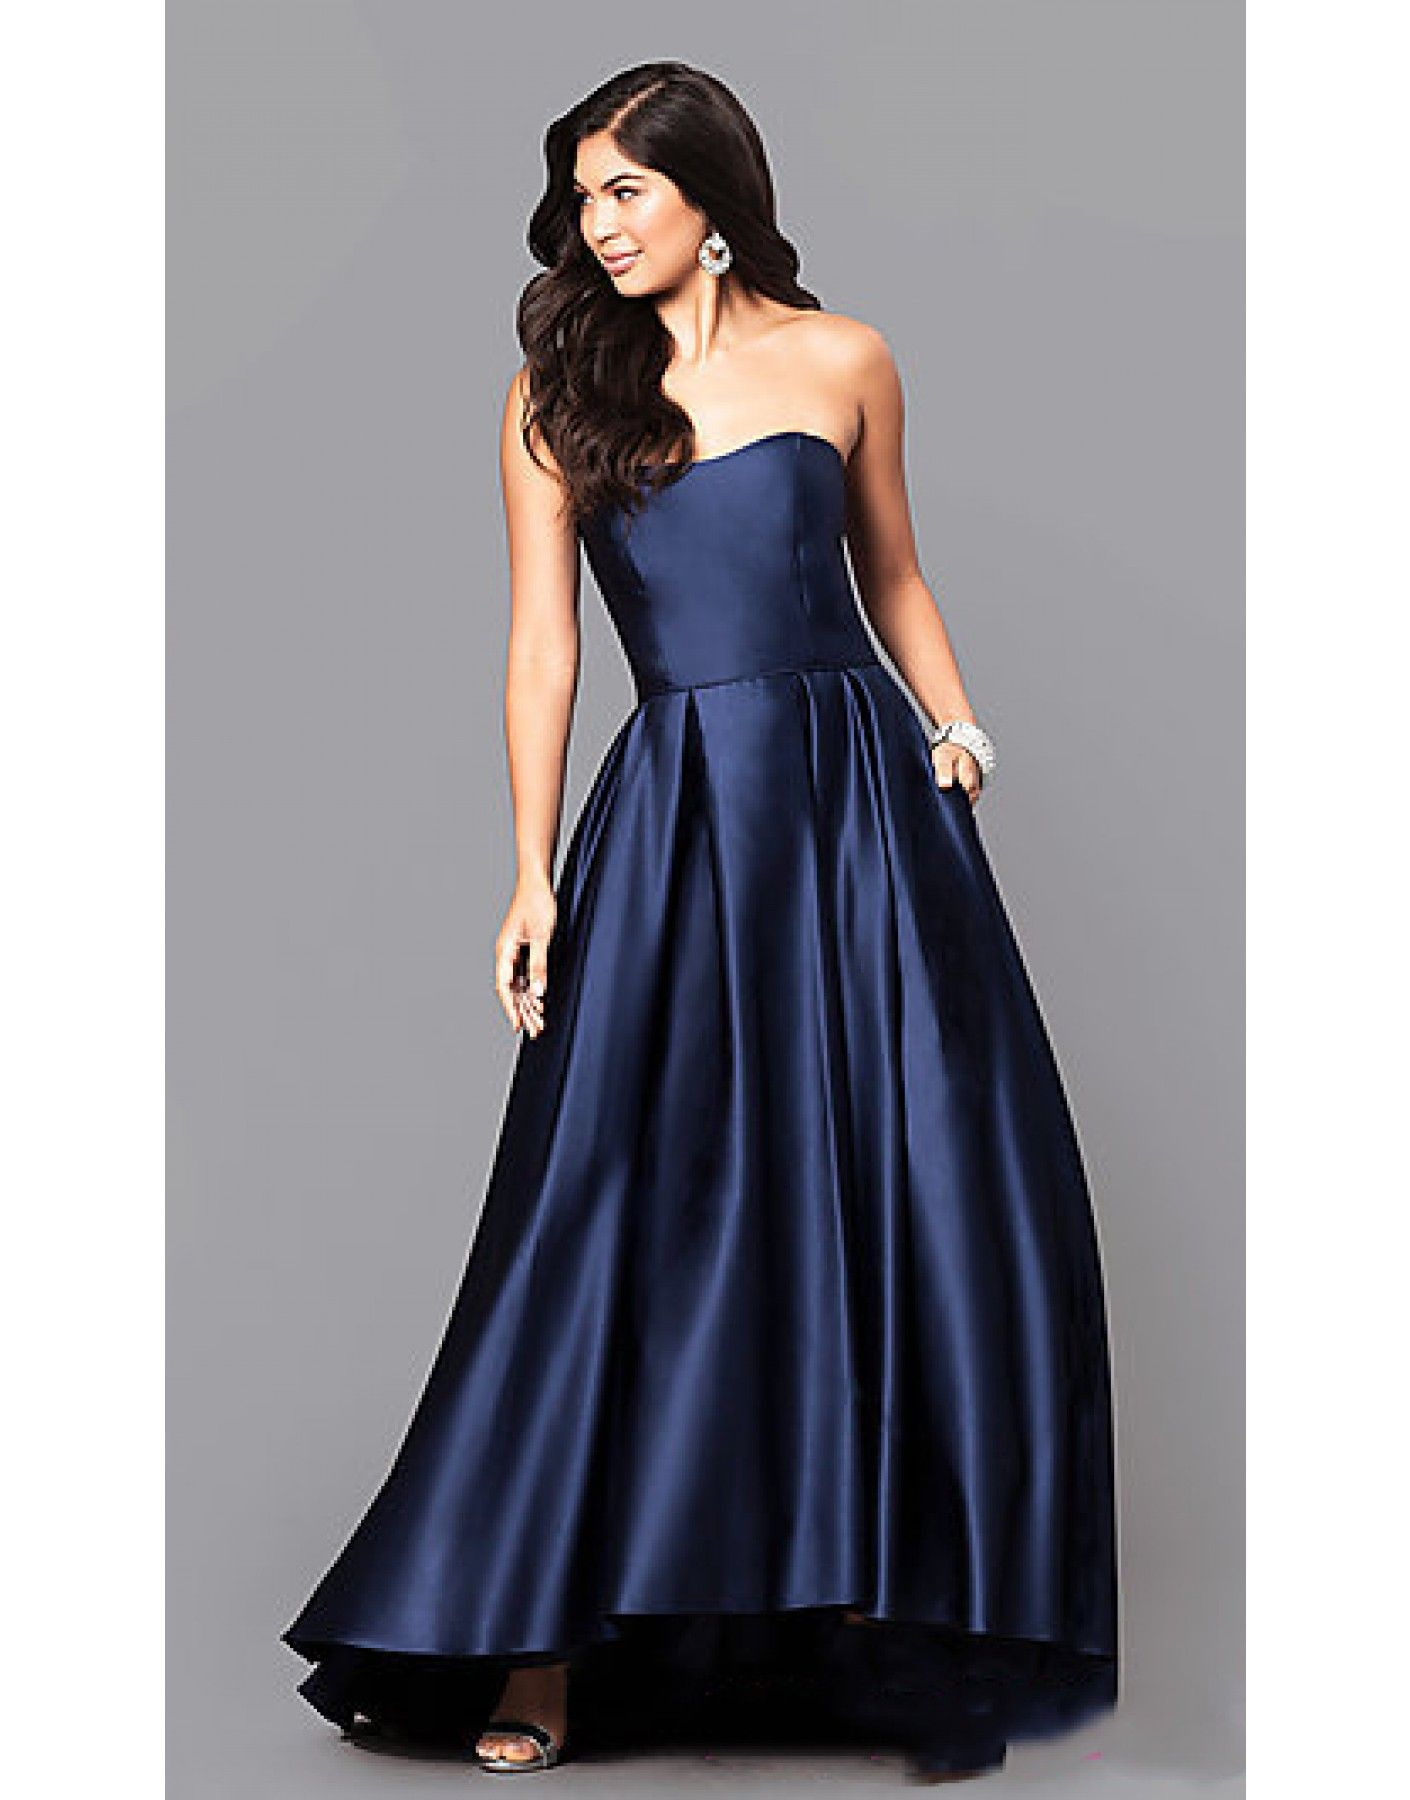 what is a reasonable price for a junior prom dress